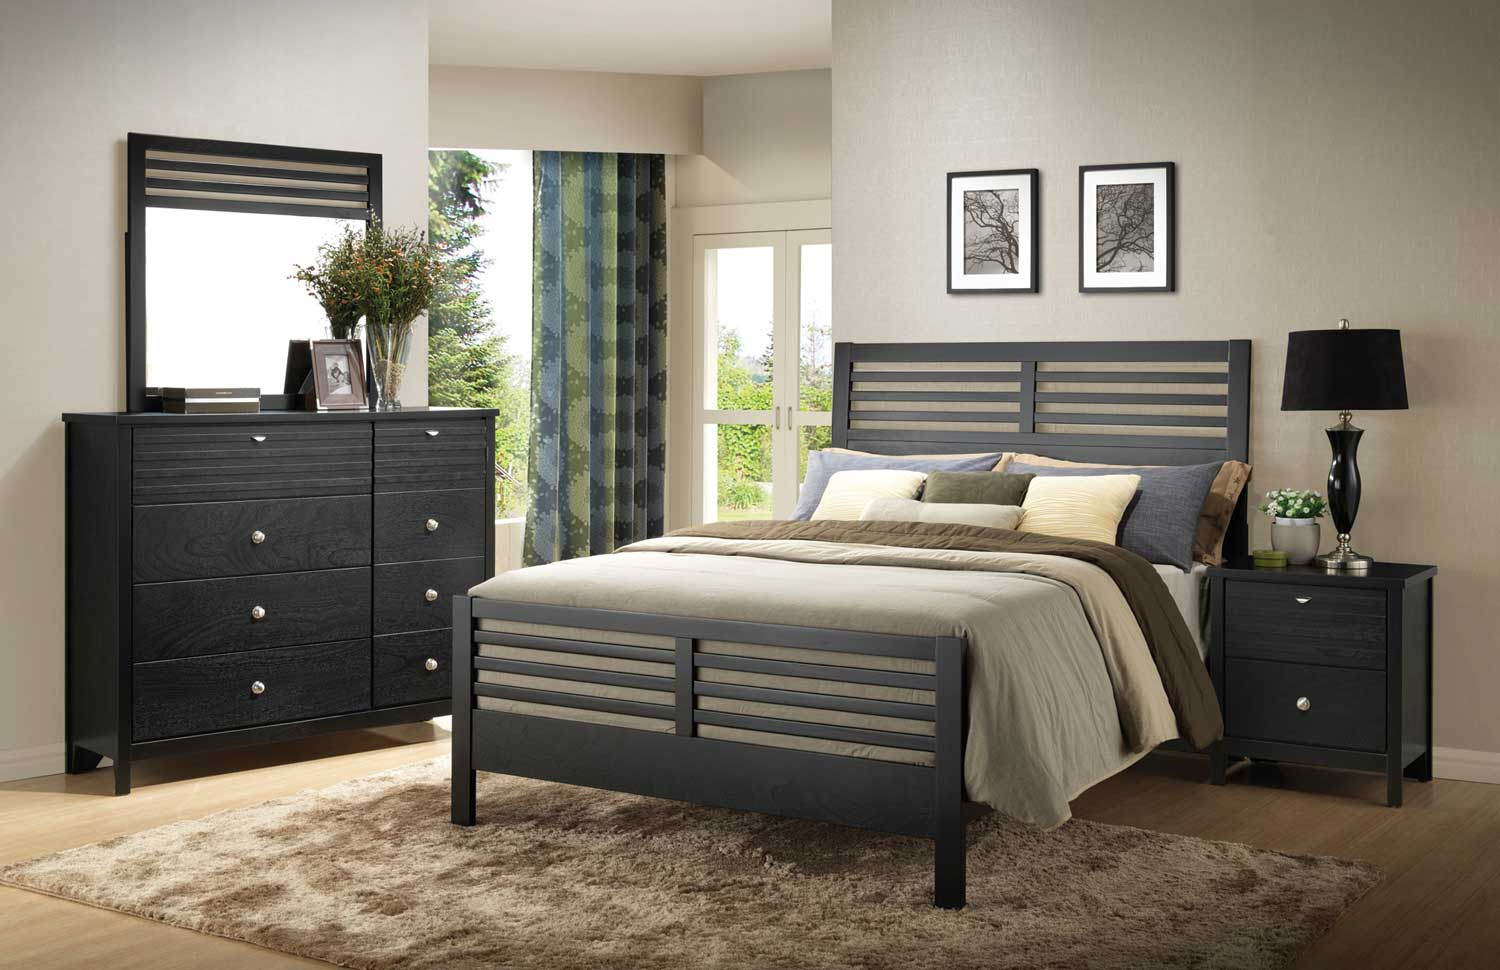 Coaster Richmond Bedroom Set Black Bed Set